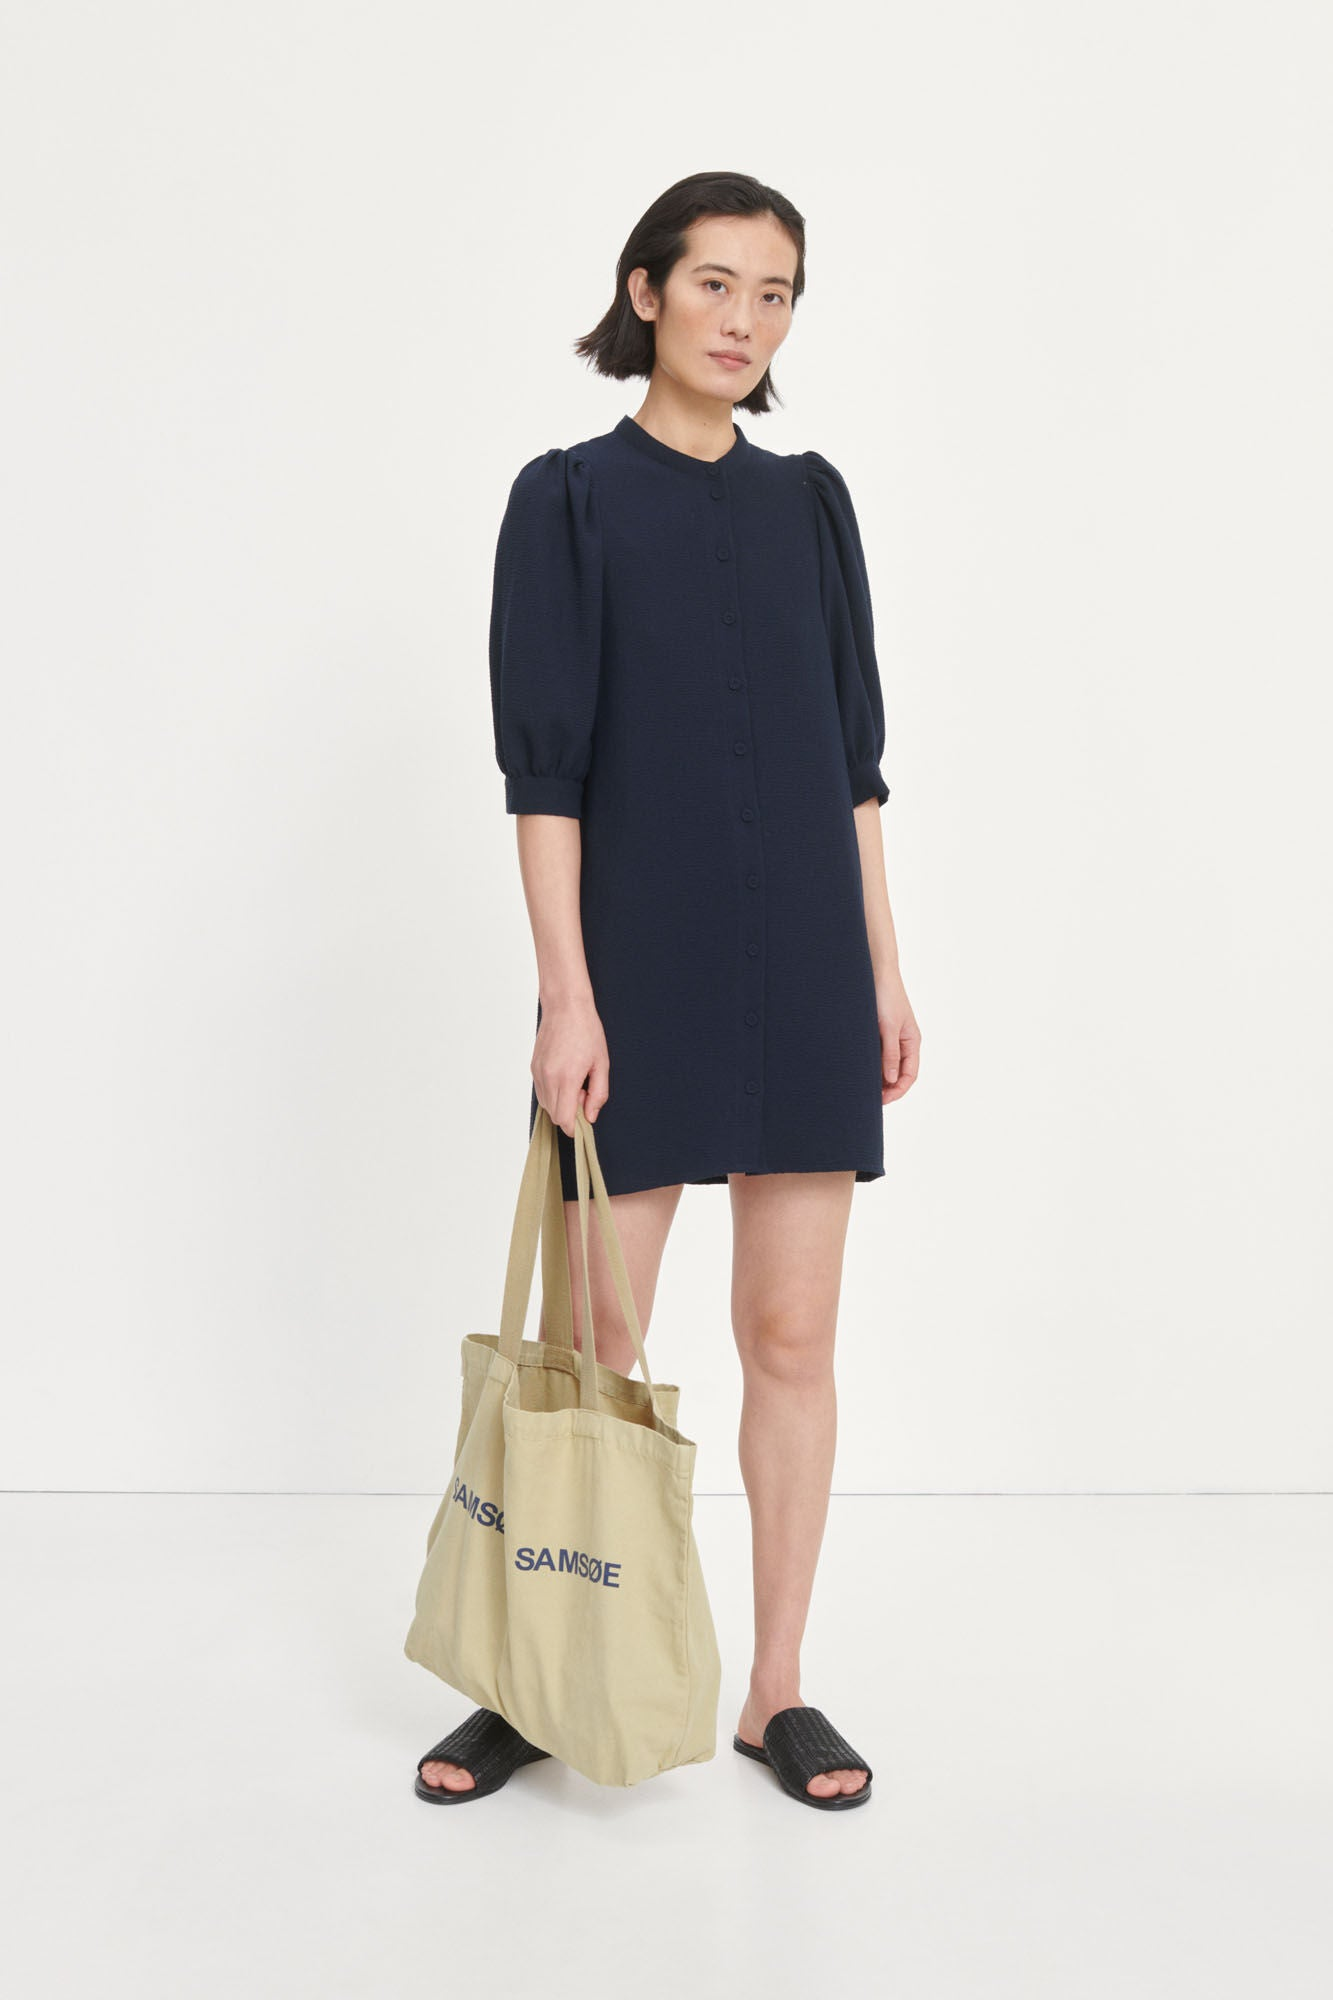 Short shirt dress with deep armholes and elbow length puffed sleeves. Mandarin collar, front button placket, covered buttons. Lightweight lining. Recycled polyester blend fabric with a textured surface. Material: 45% Recycled polyester, 53% Polyester, 2% Elastane